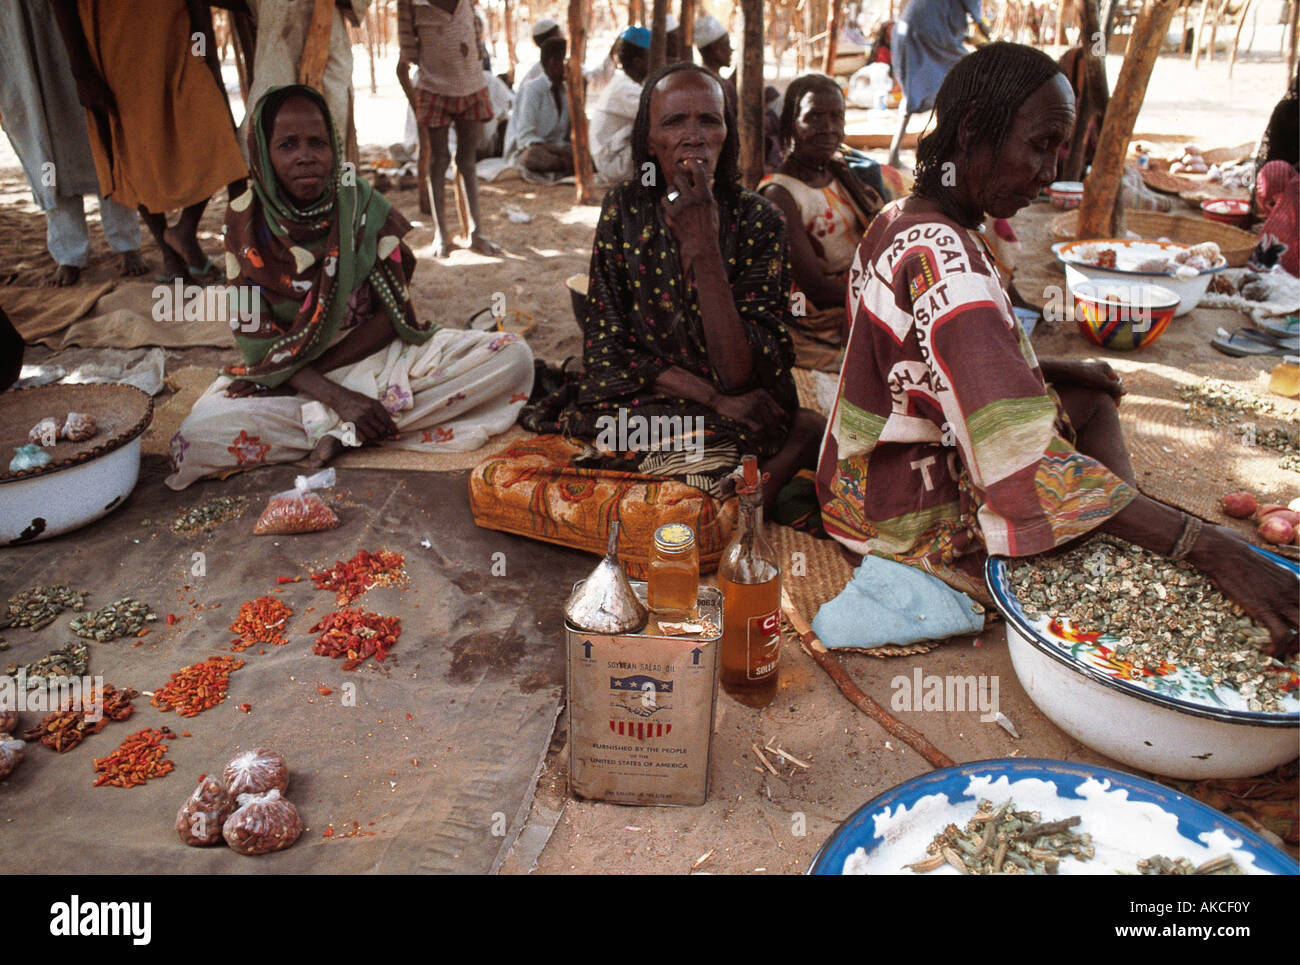 Four African women squatting on mats and cushions to sell their wares in Bol market Lake Chad Chad Africa - Stock Image